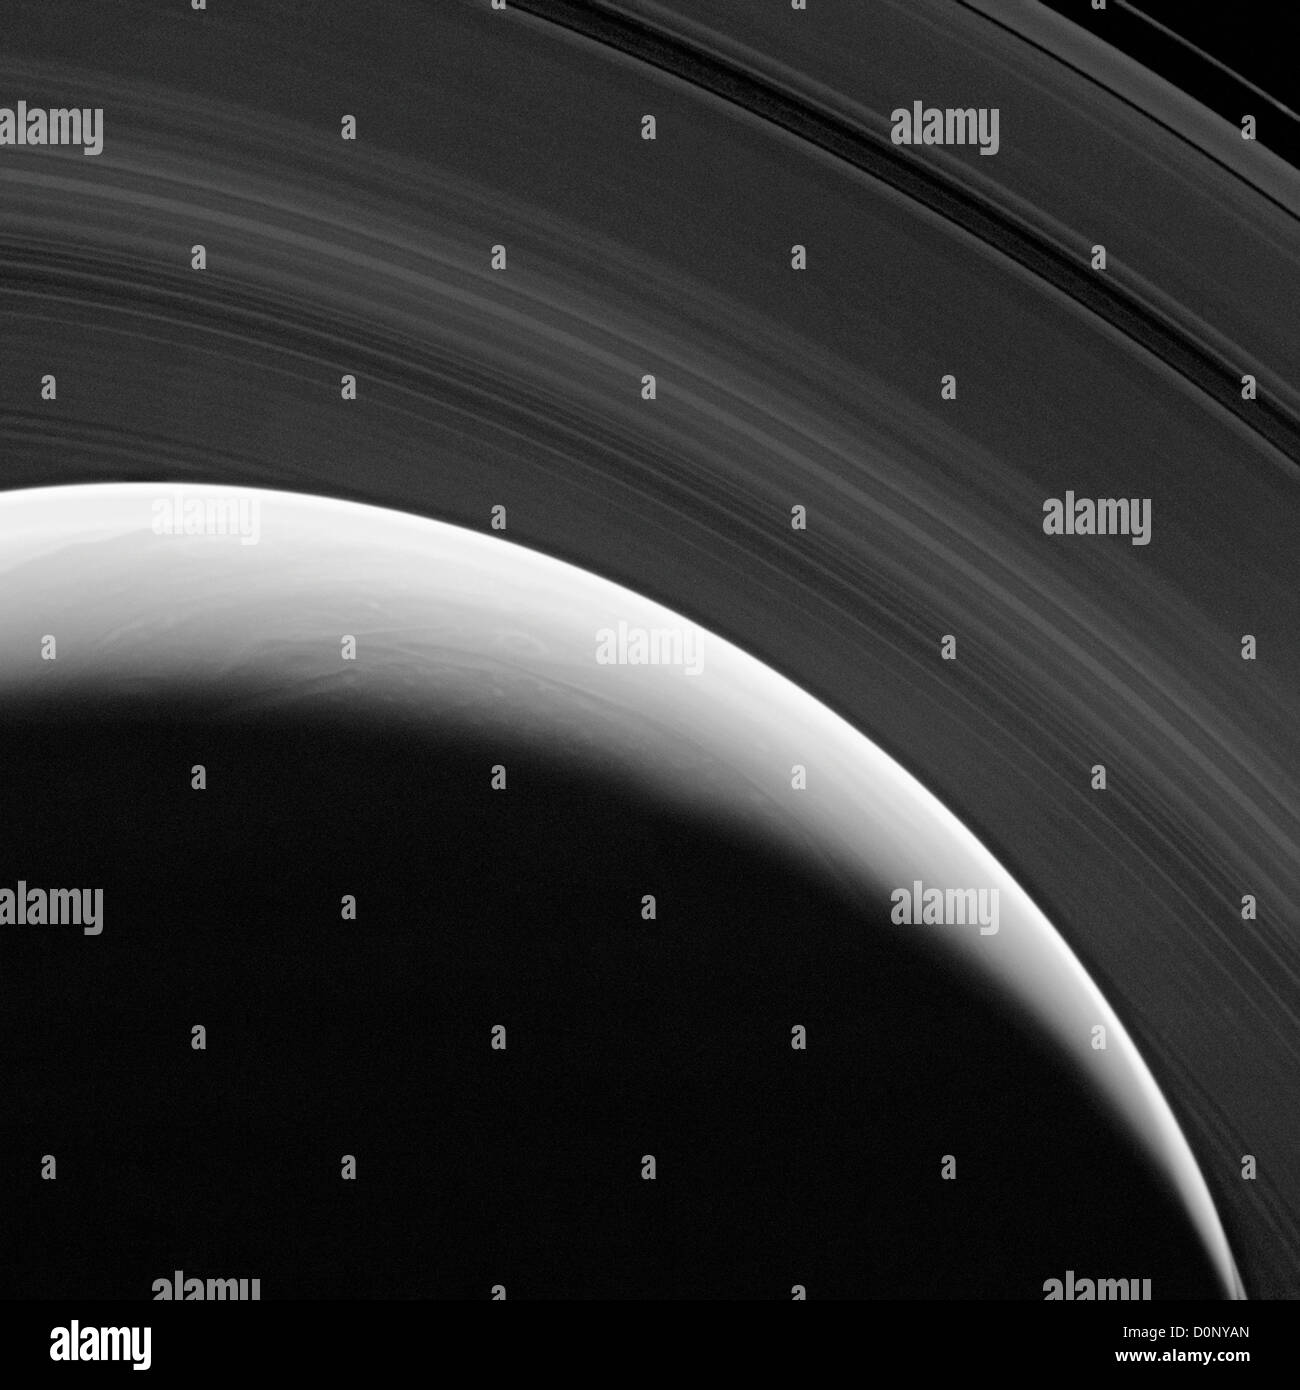 Saturn's North Pole and Rings - Stock Image